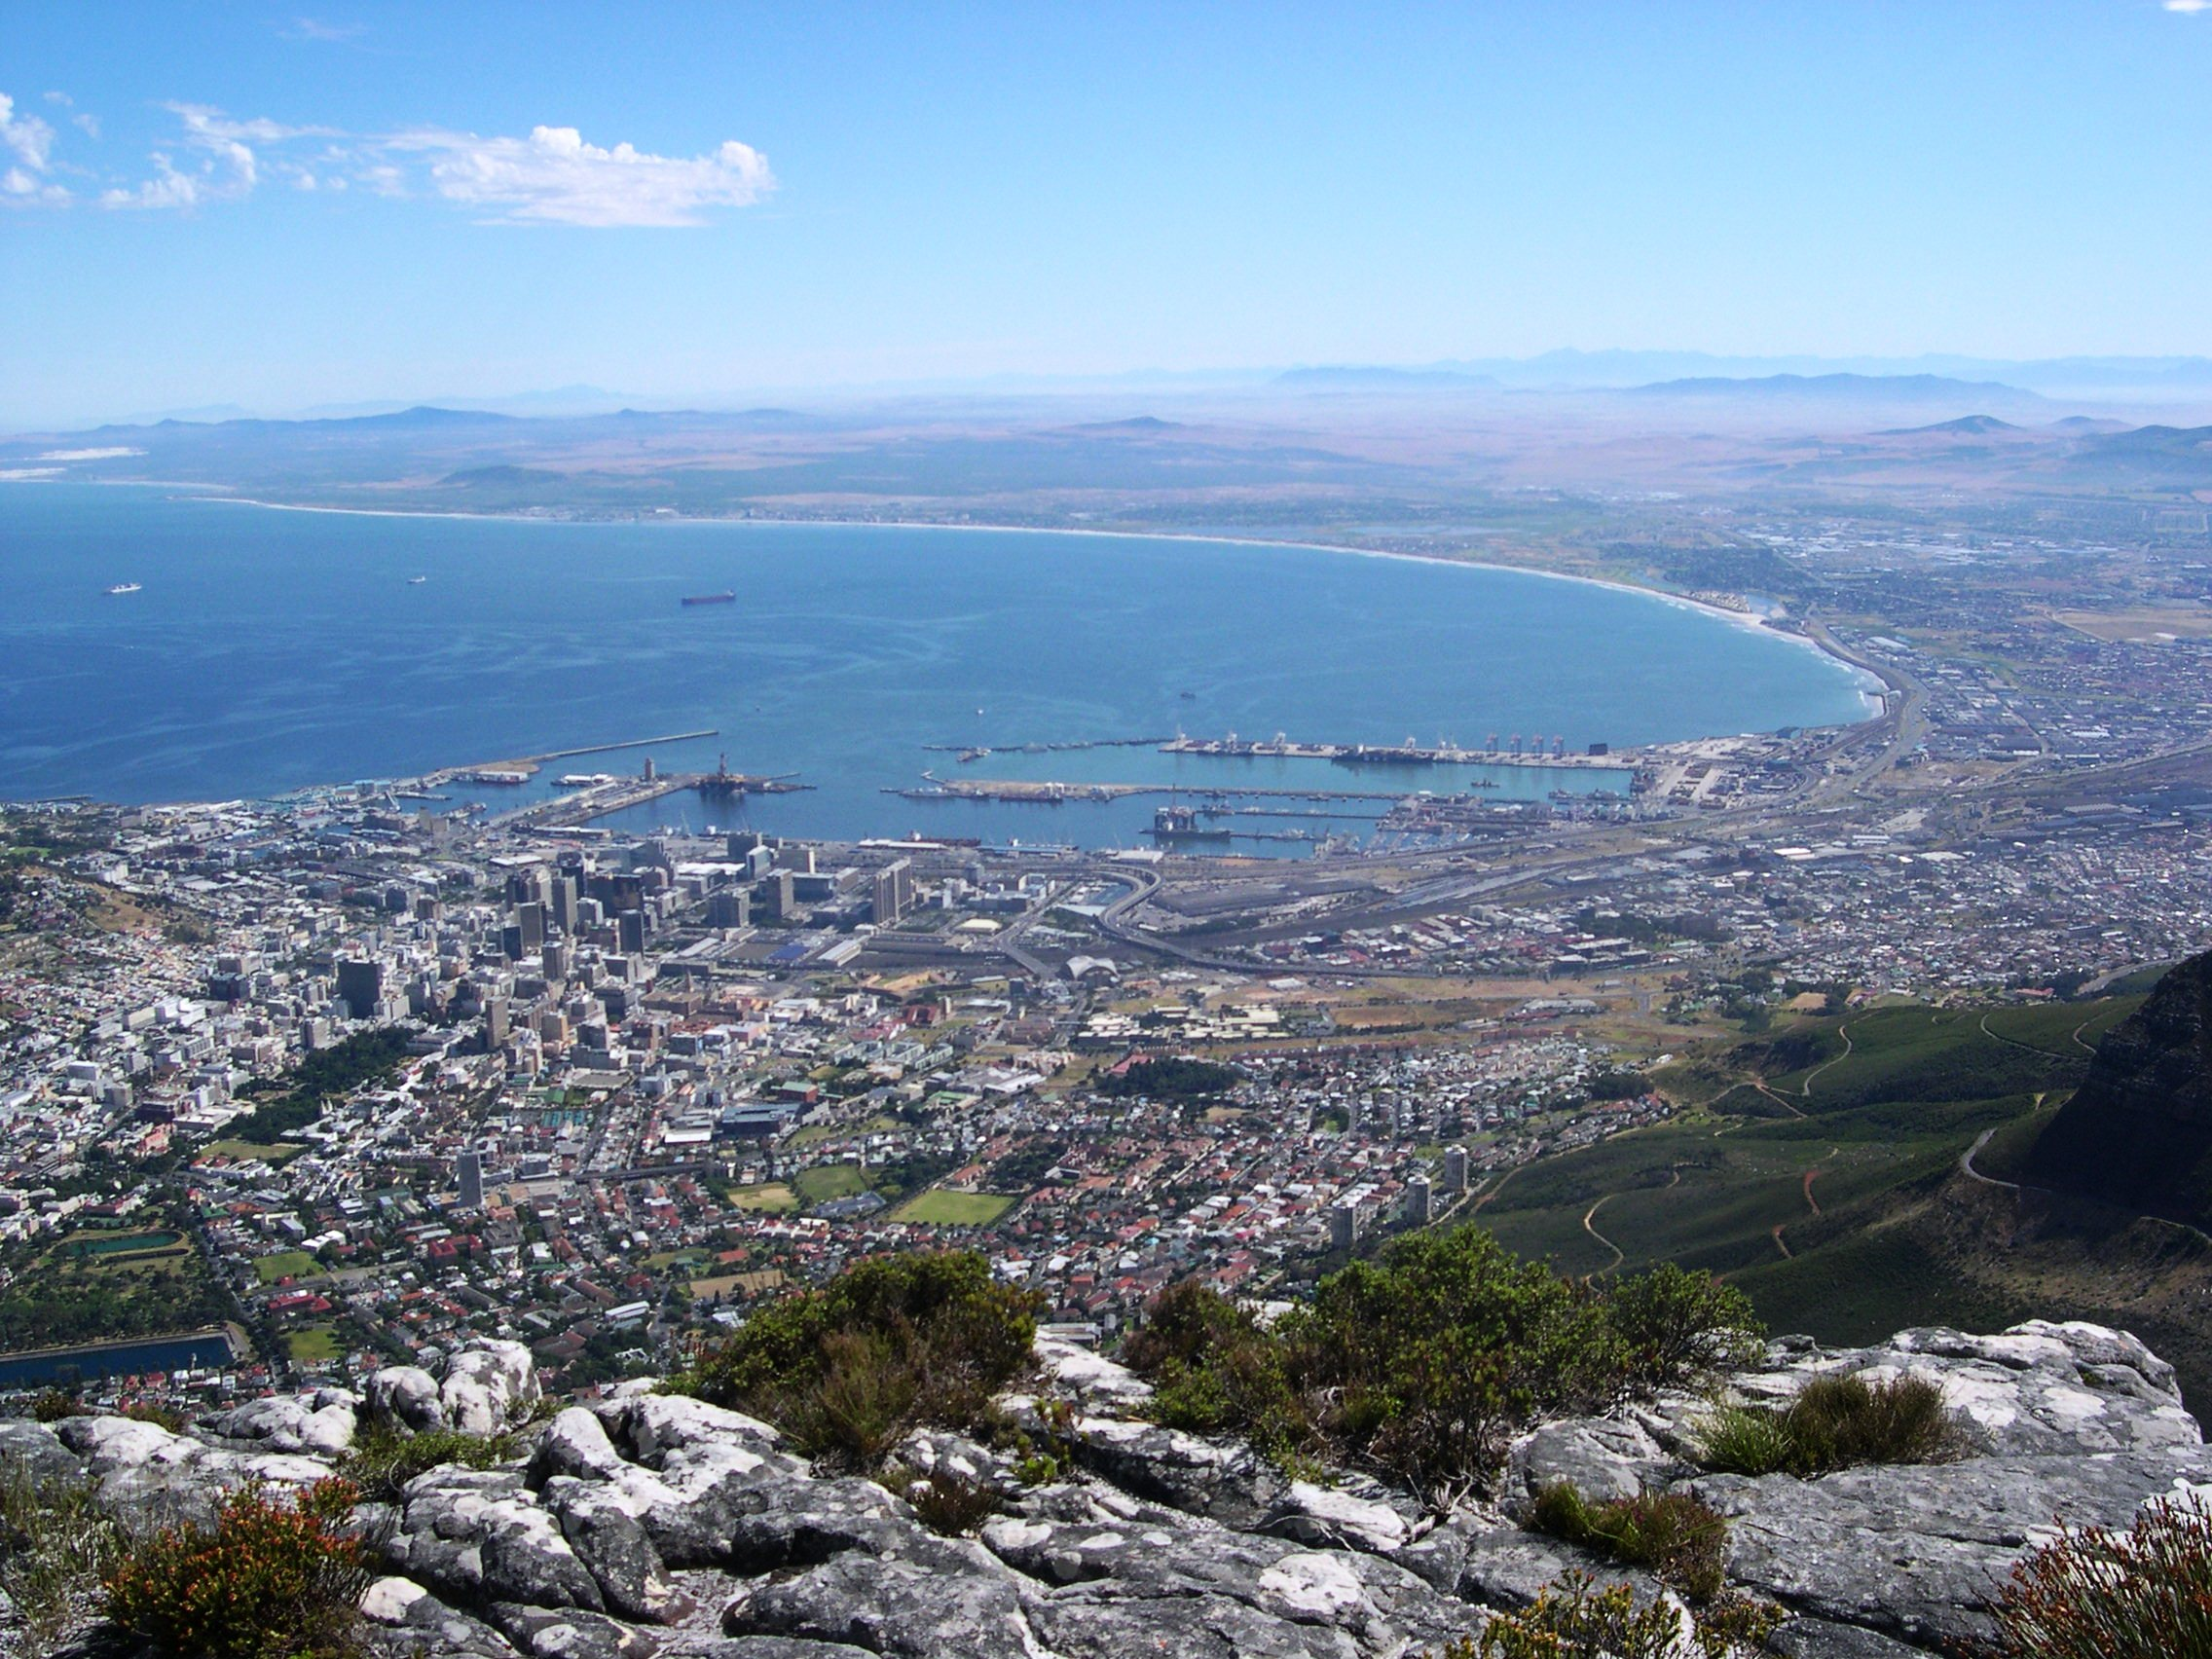 Cape Town - One of the large cities in Africa